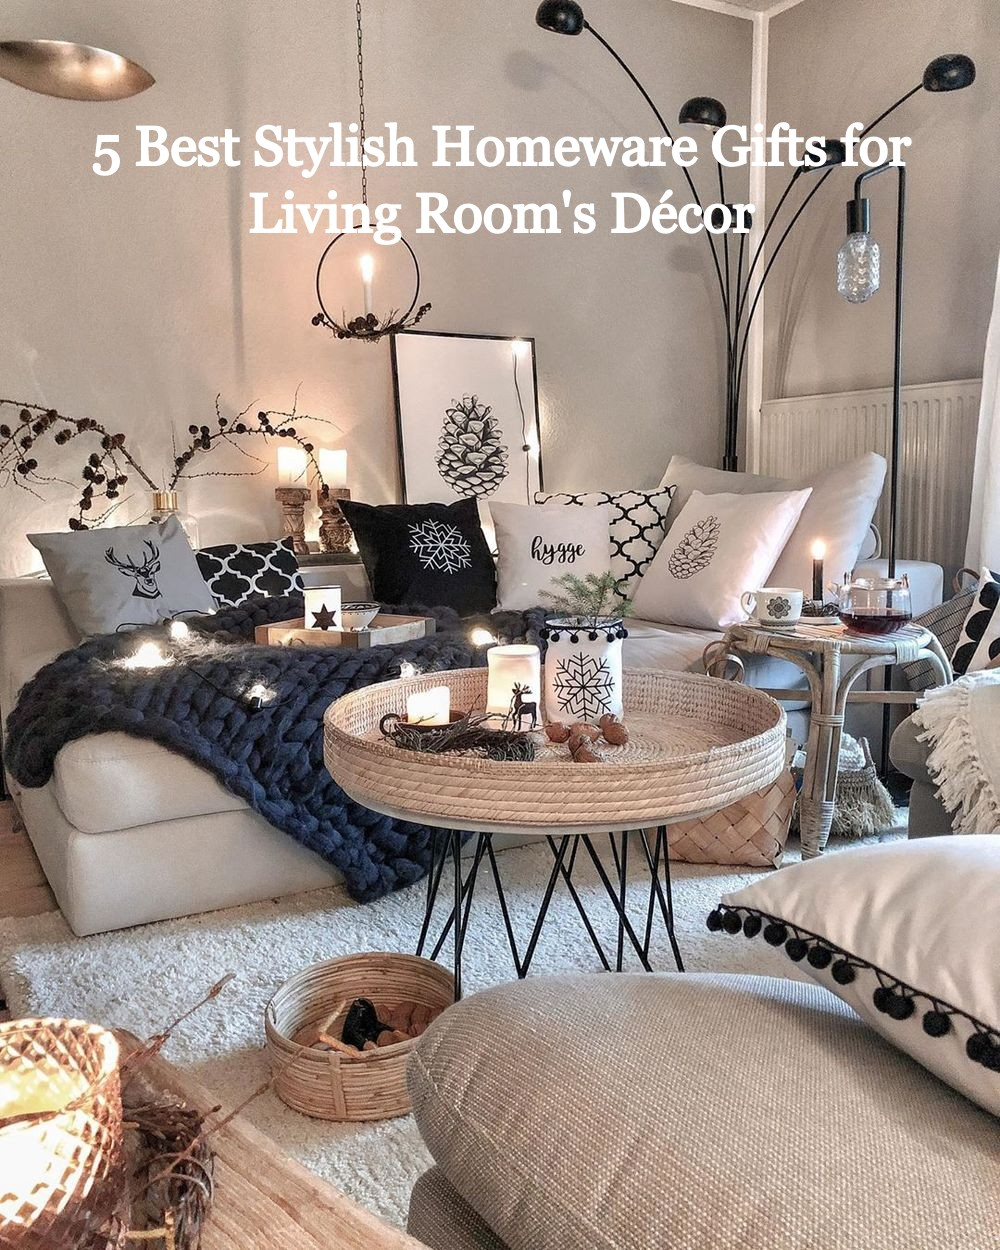 5 Best Stylish Homeware Gifts for Living Room's Decor